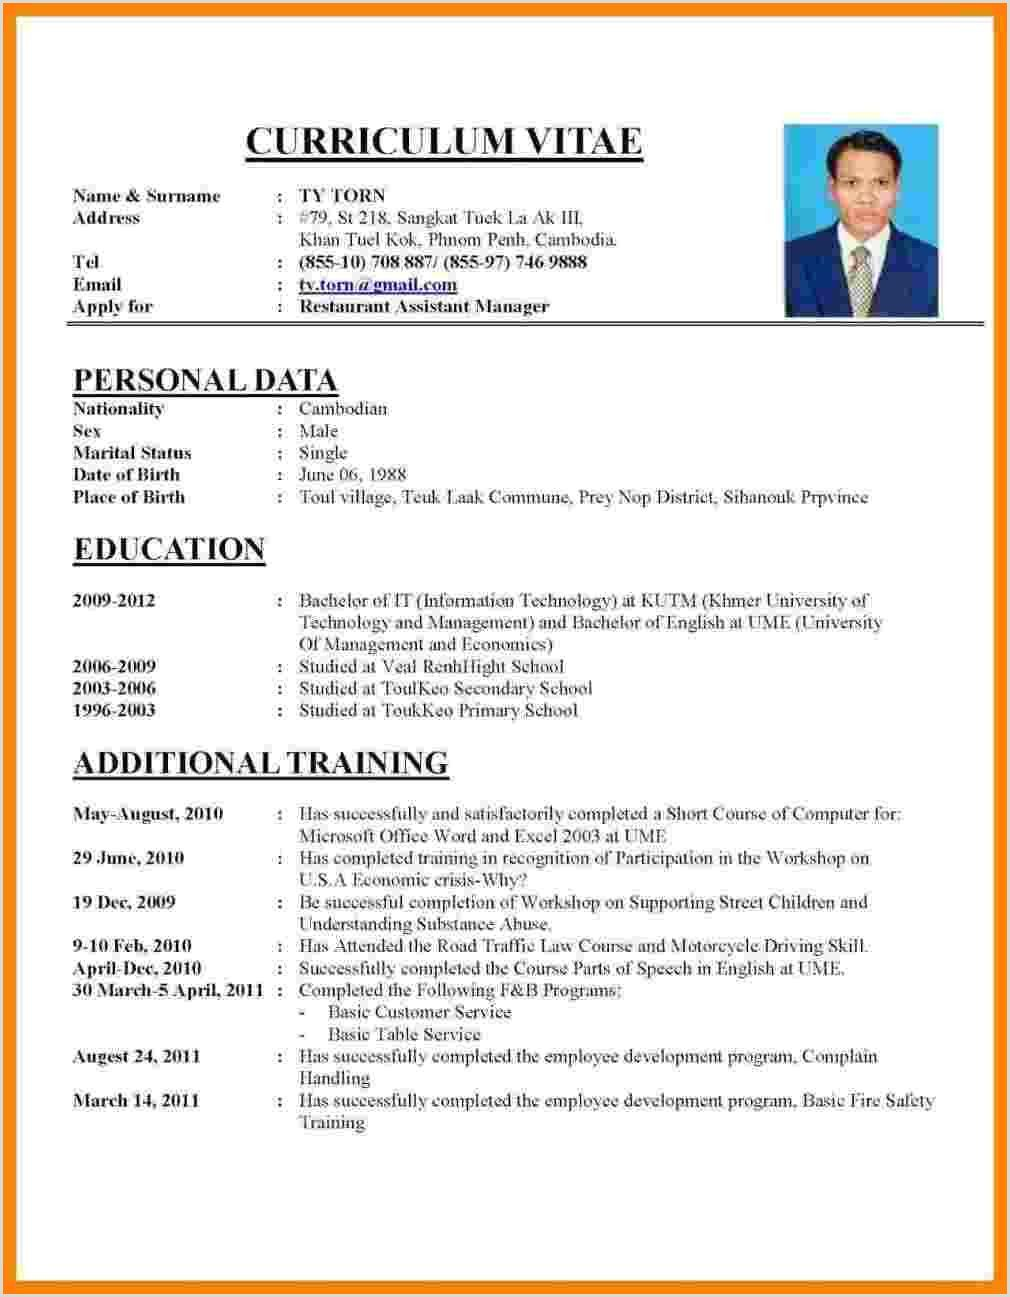 Cv Format For Teaching Job In Pakistan Cv Template Job Application My Saves In 2020 Cv Format For Job Cv Resume Sample Cv Examples